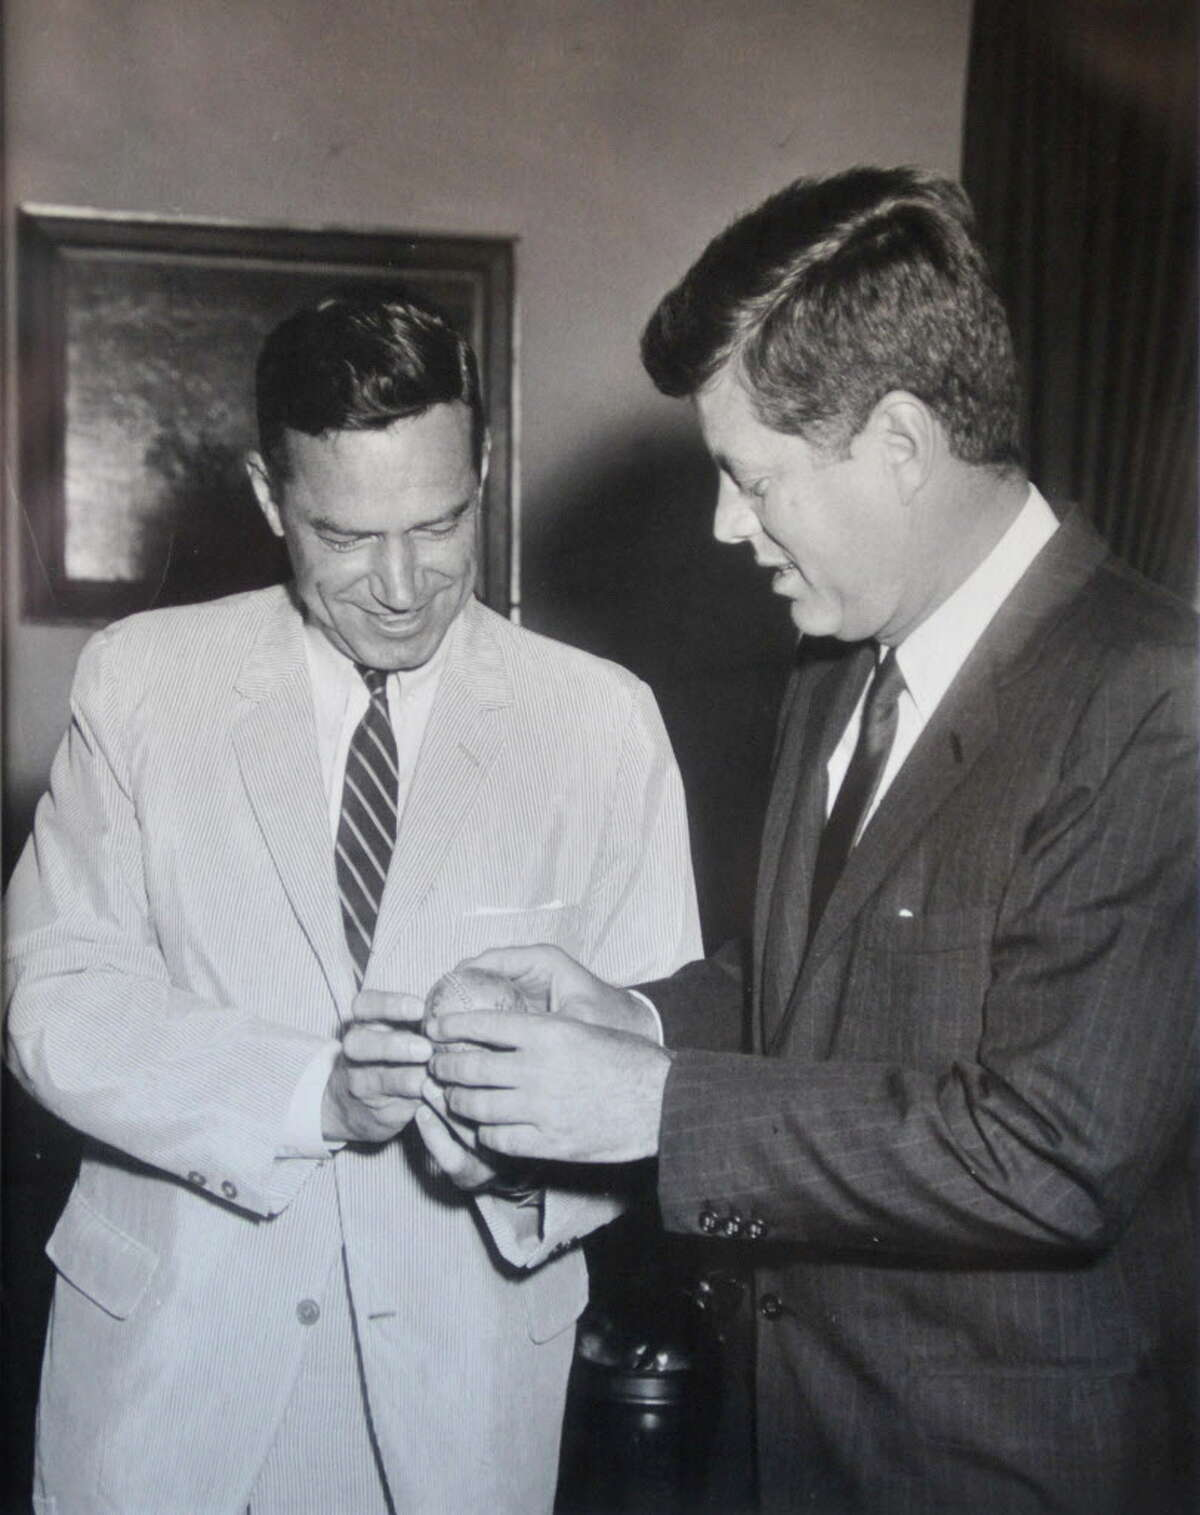 Photograph courtesy of Mayor Brian Stratton: Undated B&W photo of then US Congressman Sam Stratton, left, with President John F. Kennedy. (for Times Union story)